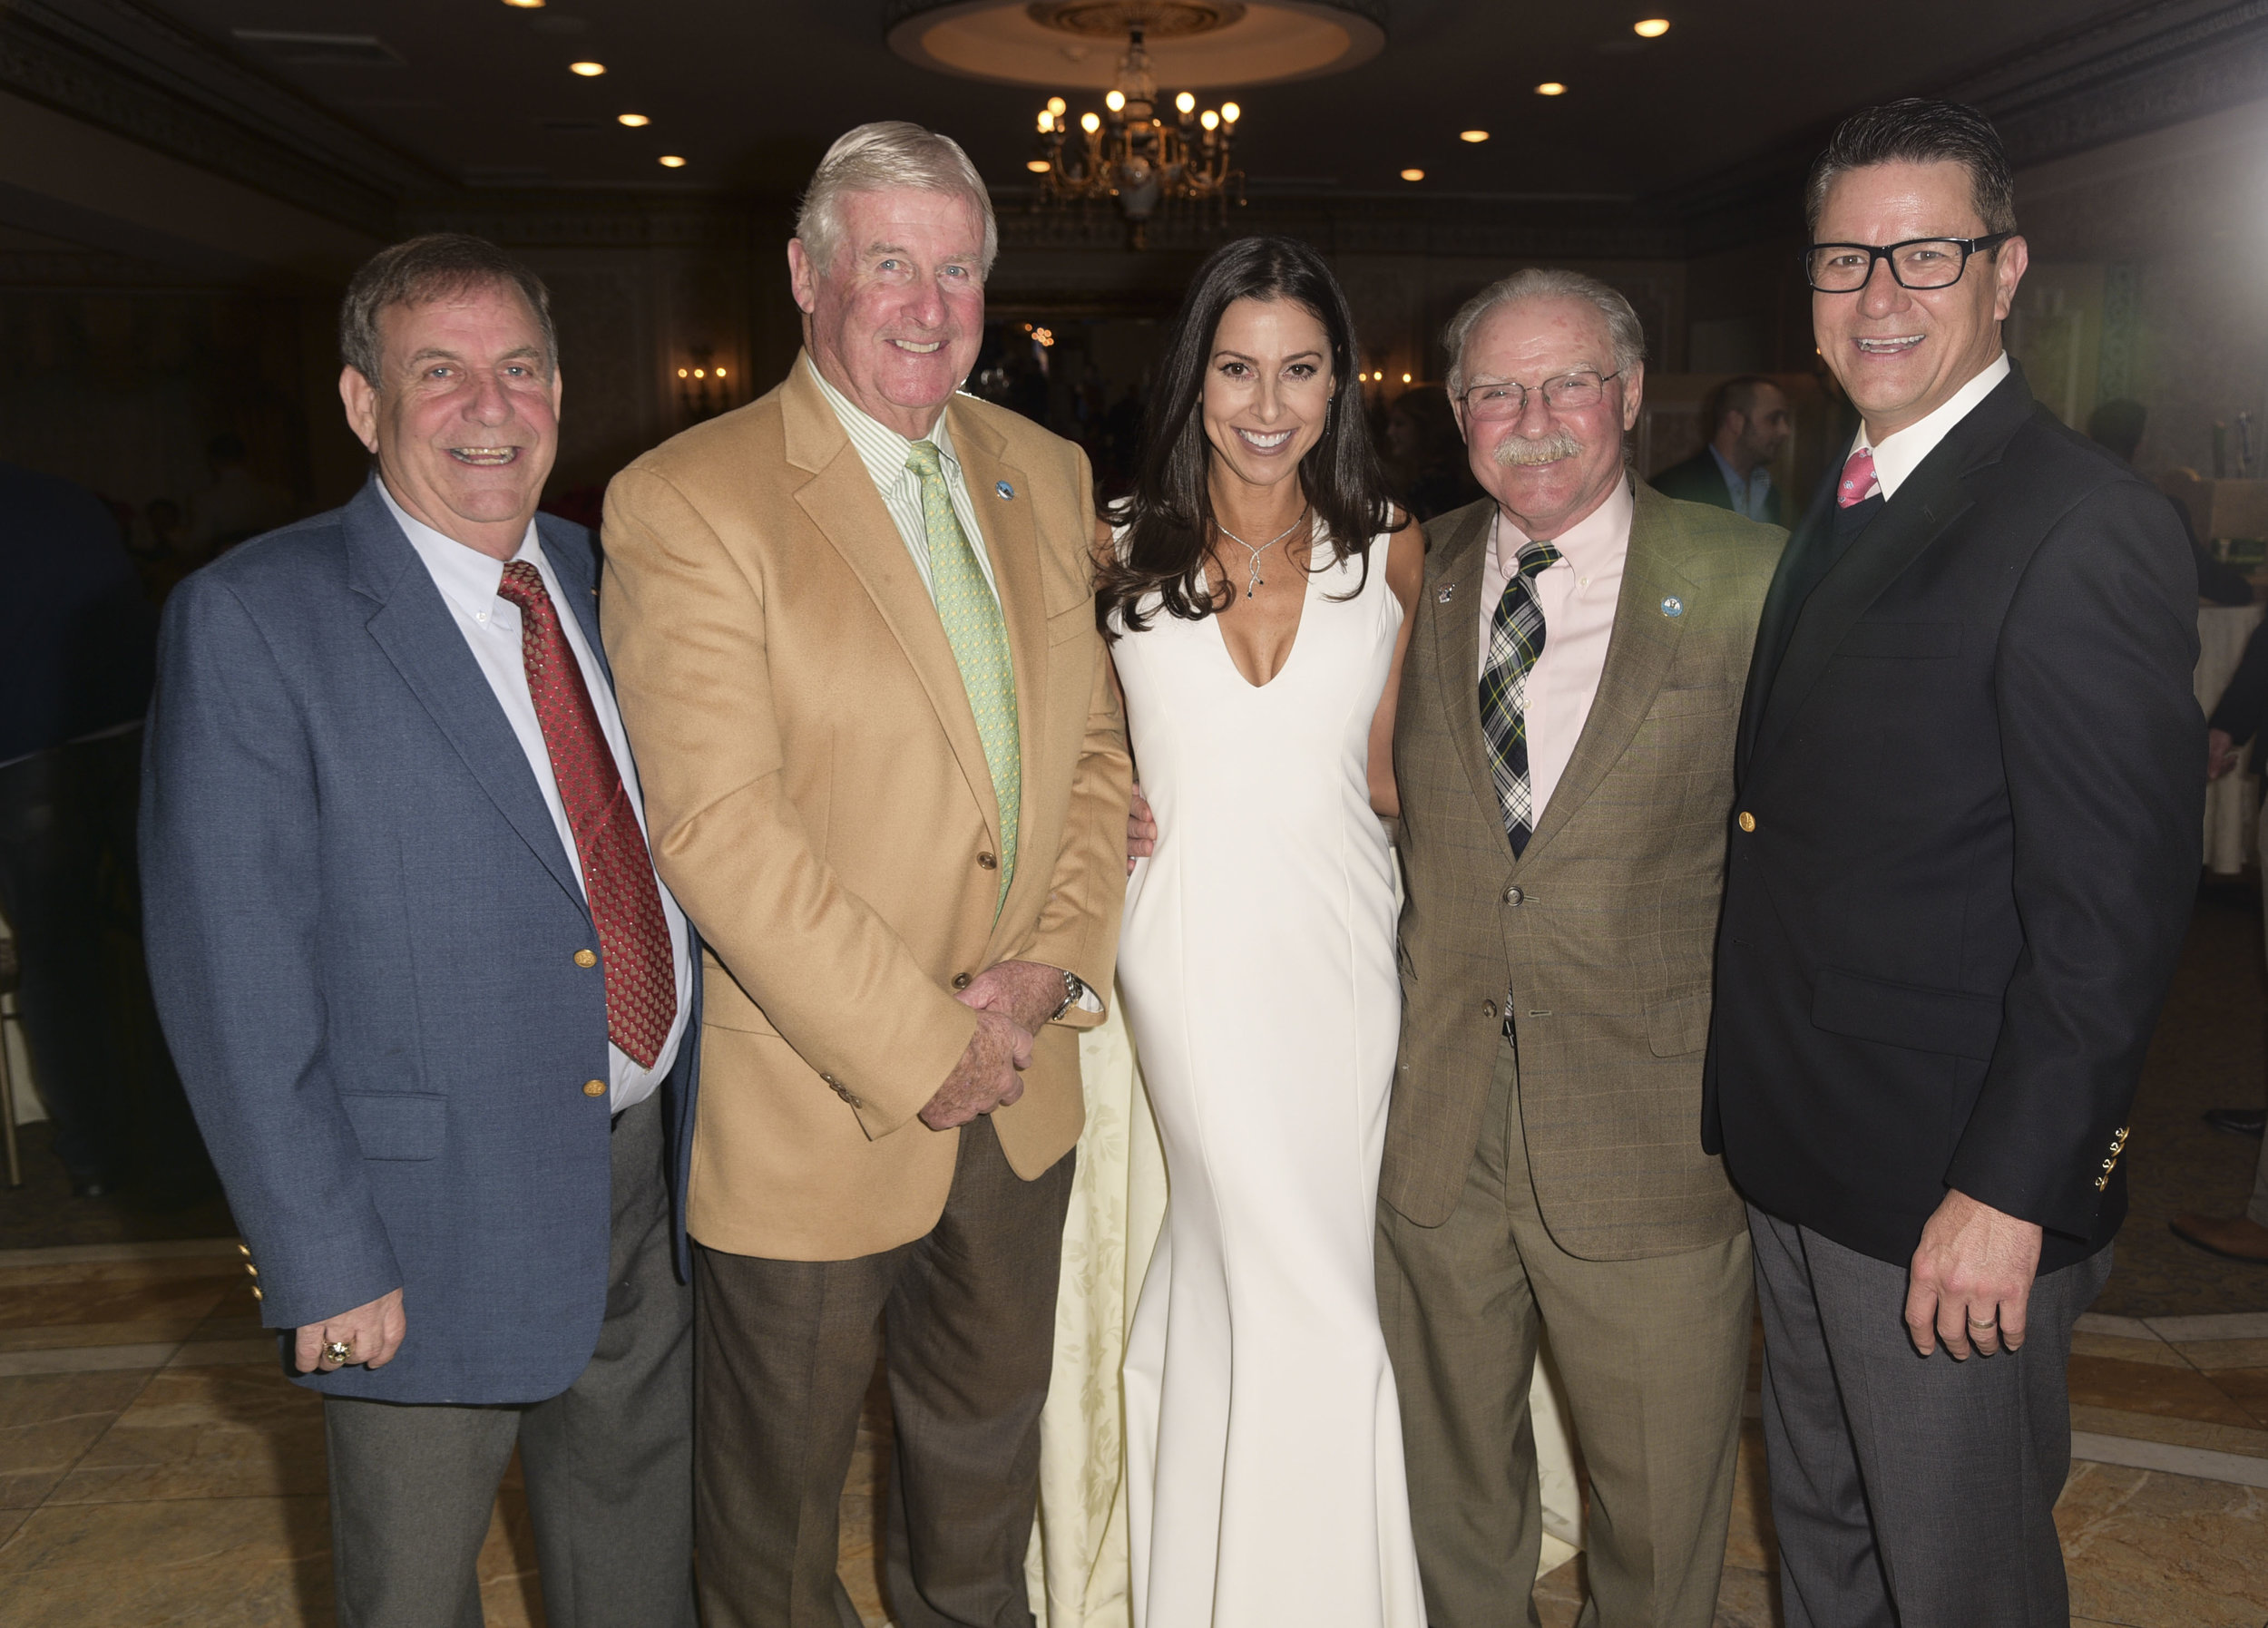 Huntington resident Christine Montanti, third from left, is joined by, from left, Tony Davida, Kevin Muldowney, Ralph Scordino and Steve Neary last week at the eighth annual Holiday Dreams event, which helped raise money to buy gifts for children of families in need.   Photos/Rob Rich/SocietyAllure.com